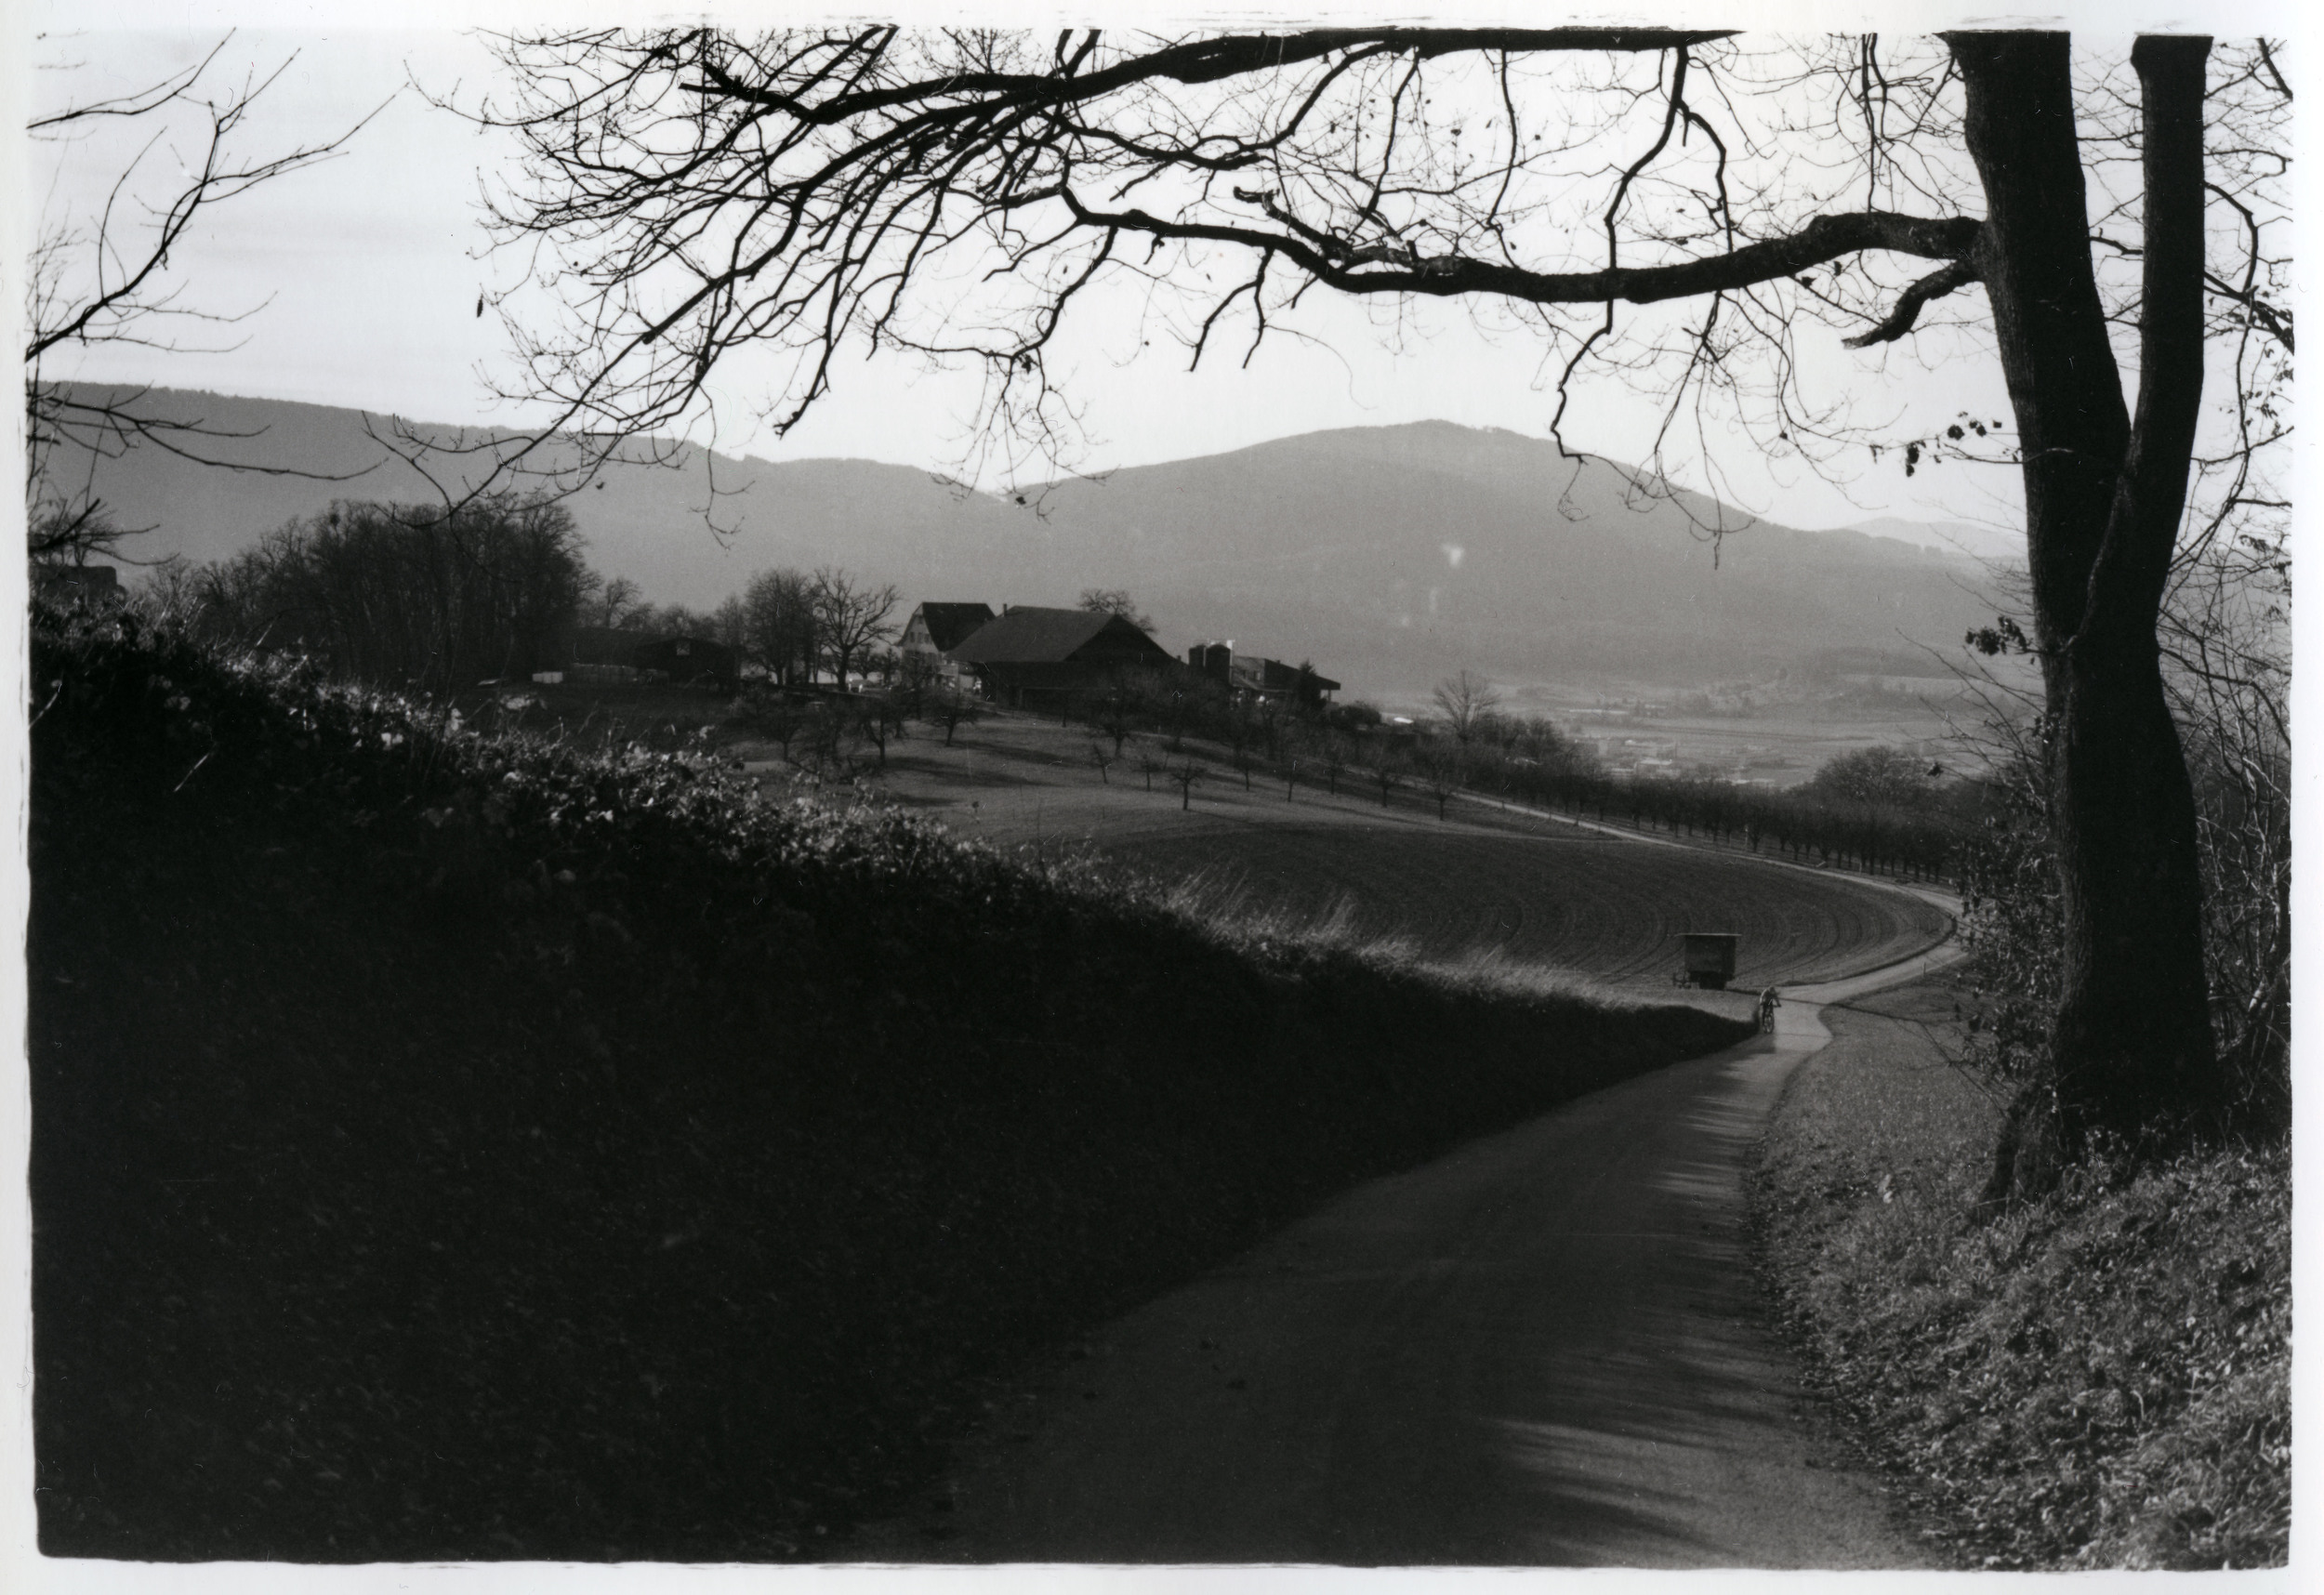 Hiking    Silver Gelatin Print, Switzerland, 2014